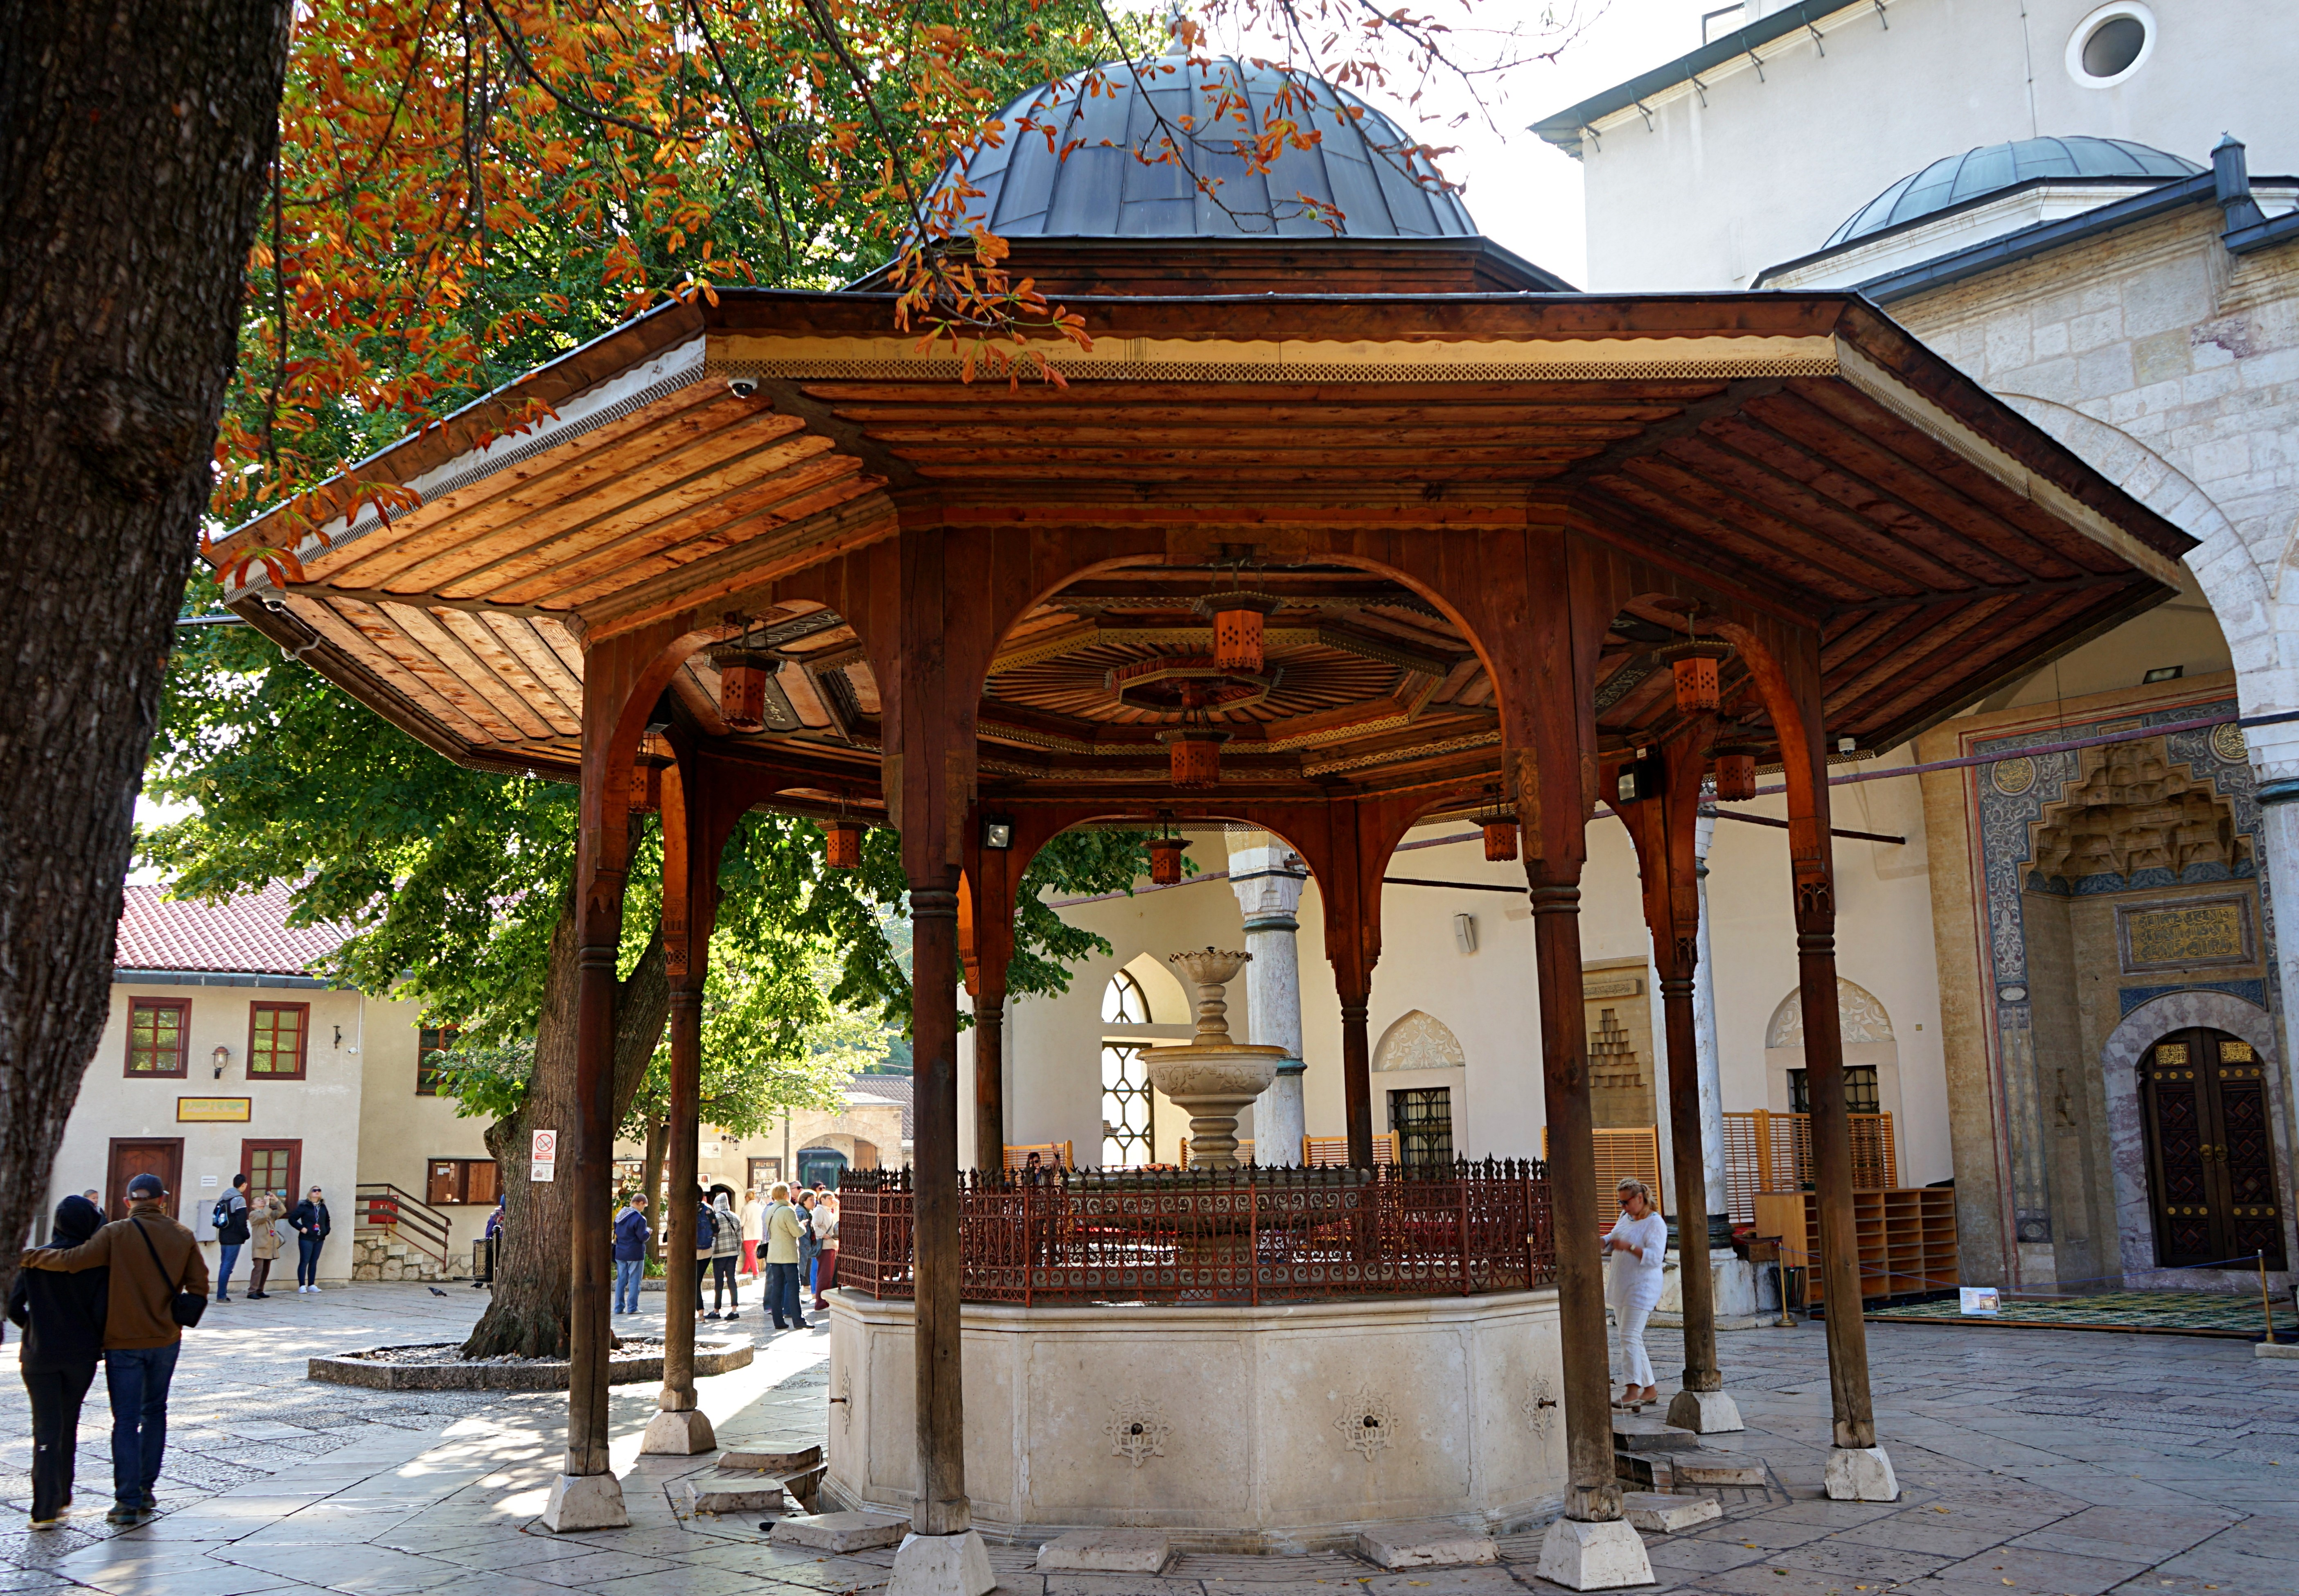 Shadrvan is a wooden place for washing before prayer in Sarajevo